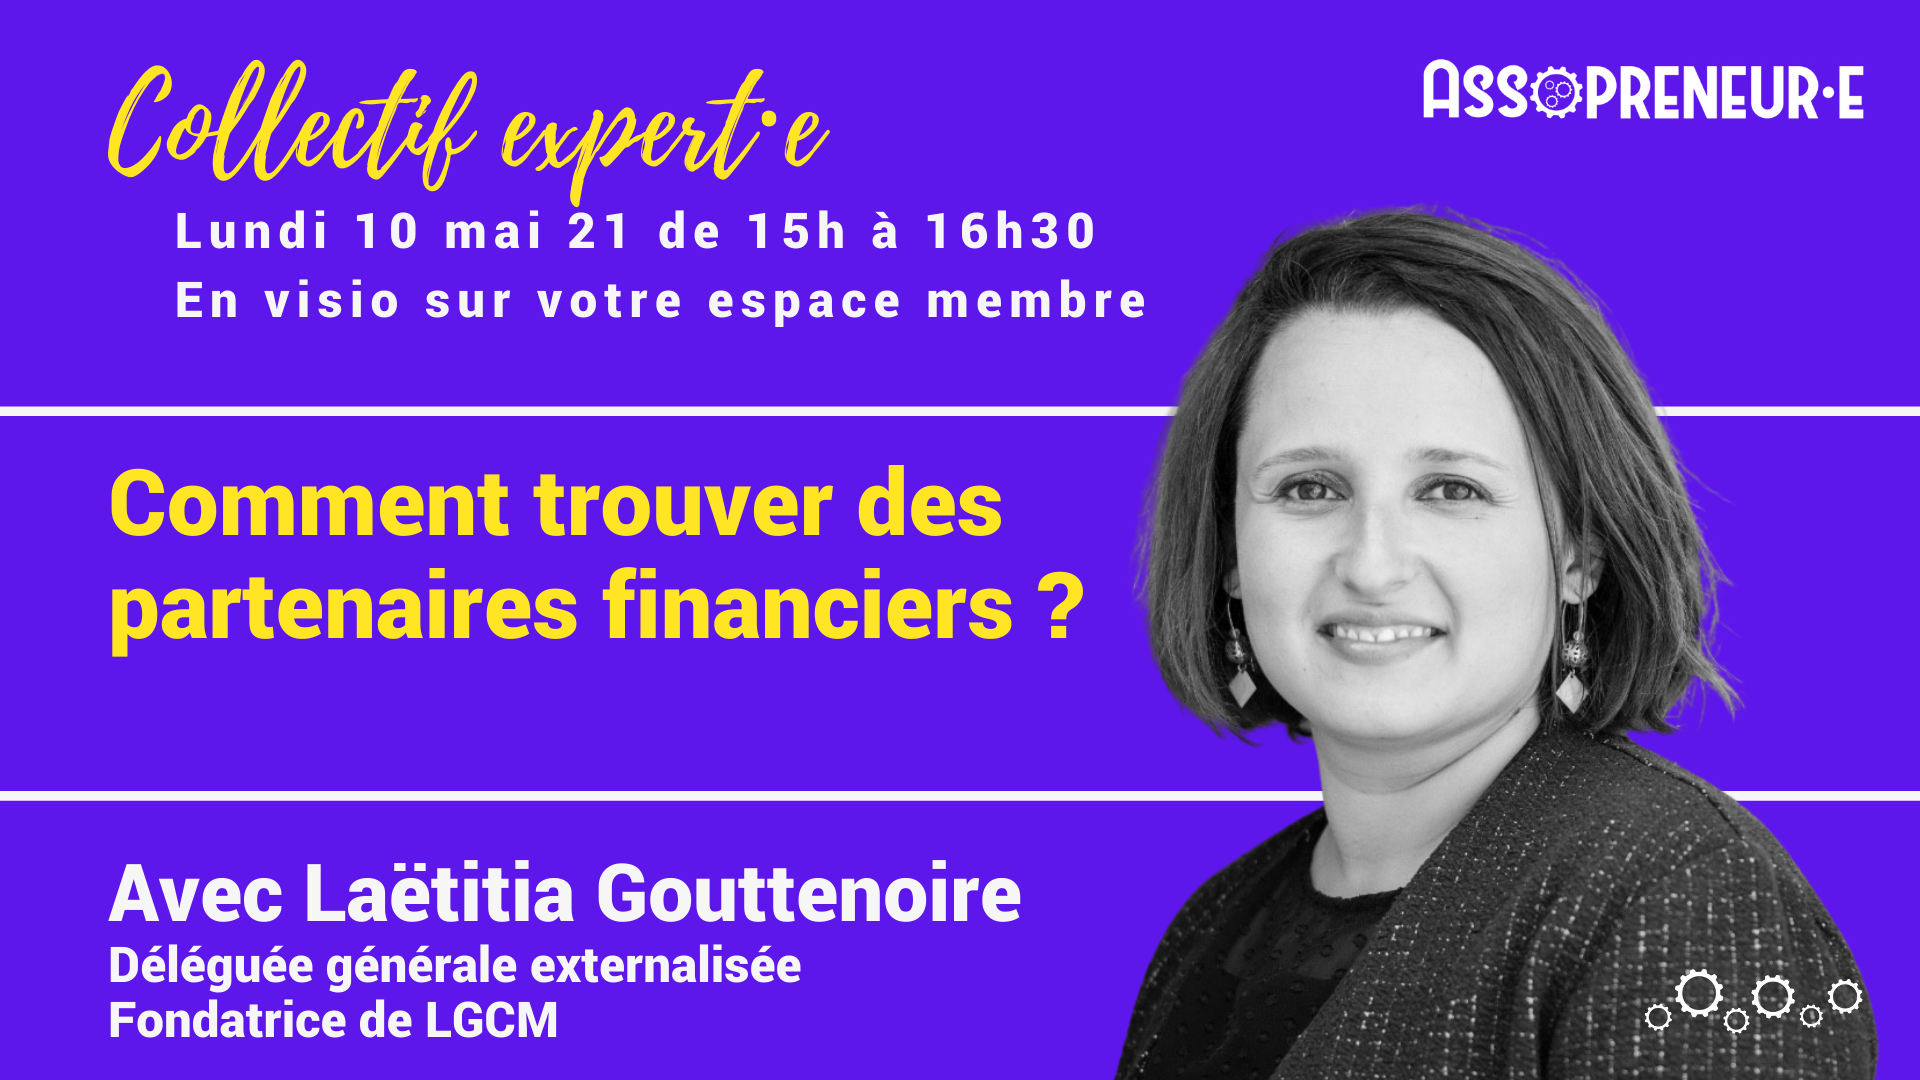 Collectif expert Laetitia Gouttenoire 100521